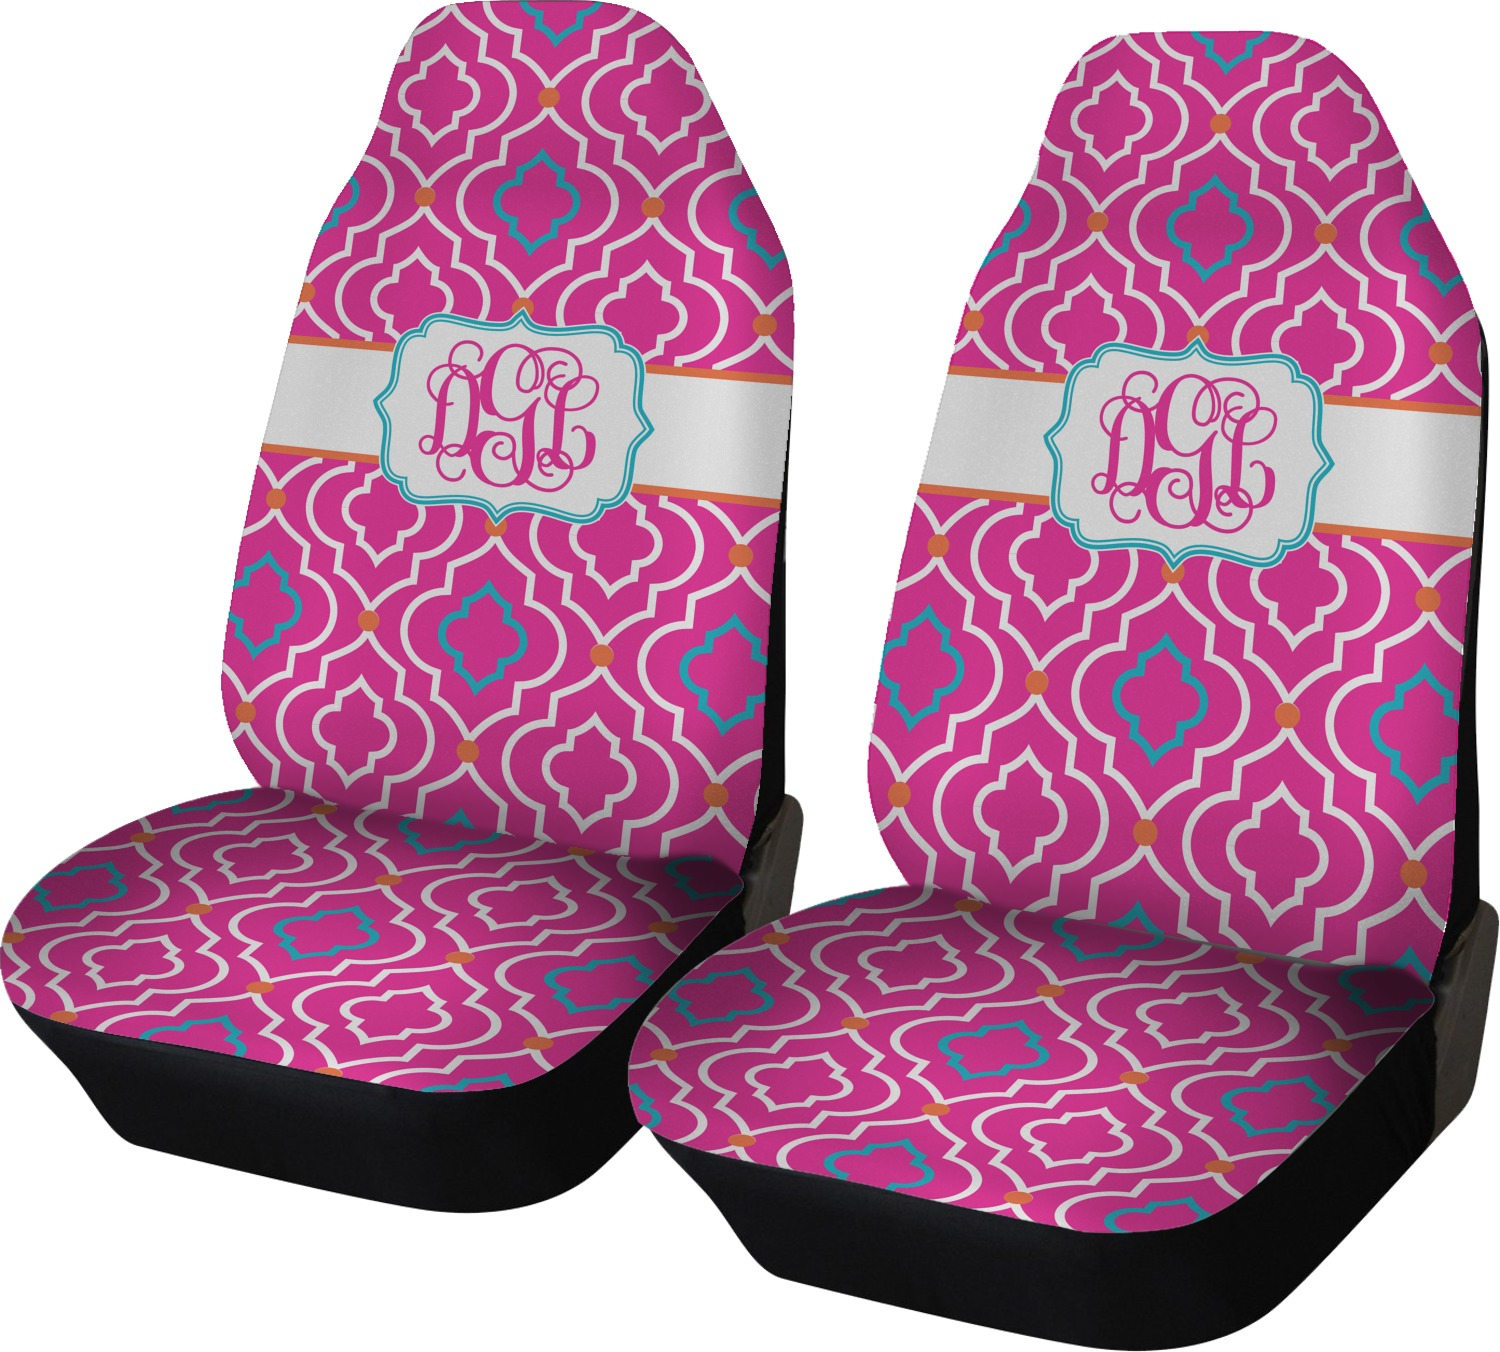 Colorful Trellis Car Seat Covers Set Of Two Personalized